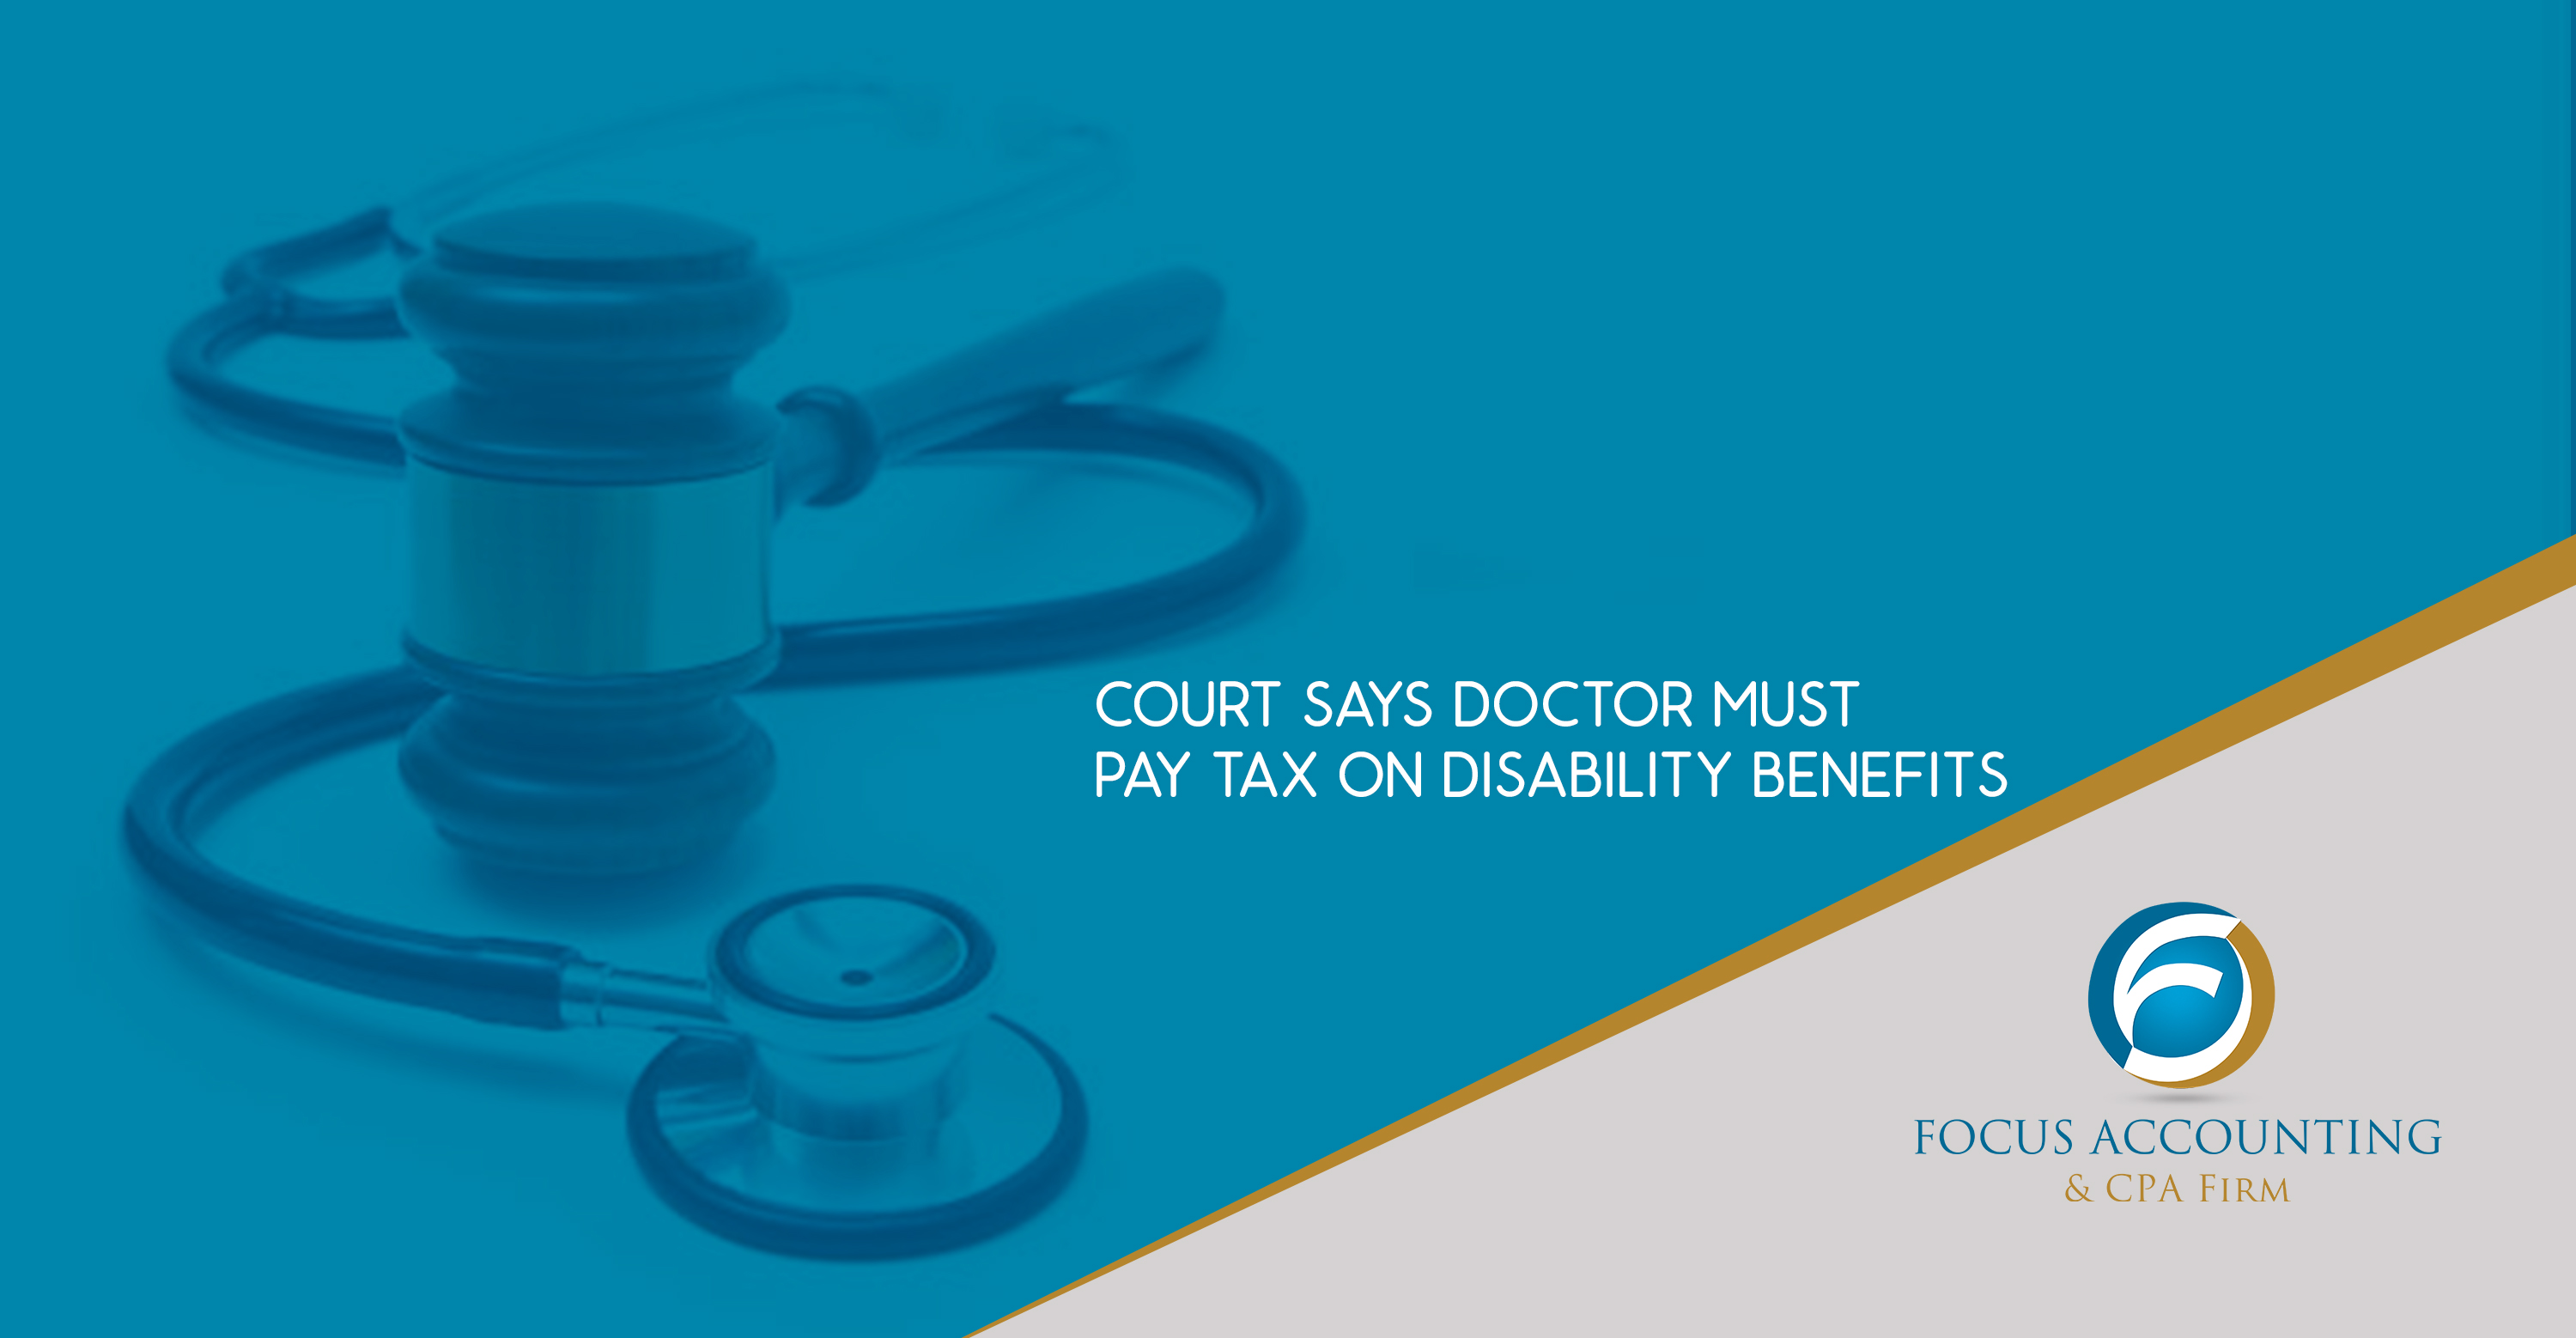 Court Says Doctor Must Pay Tax On Disability Benefits